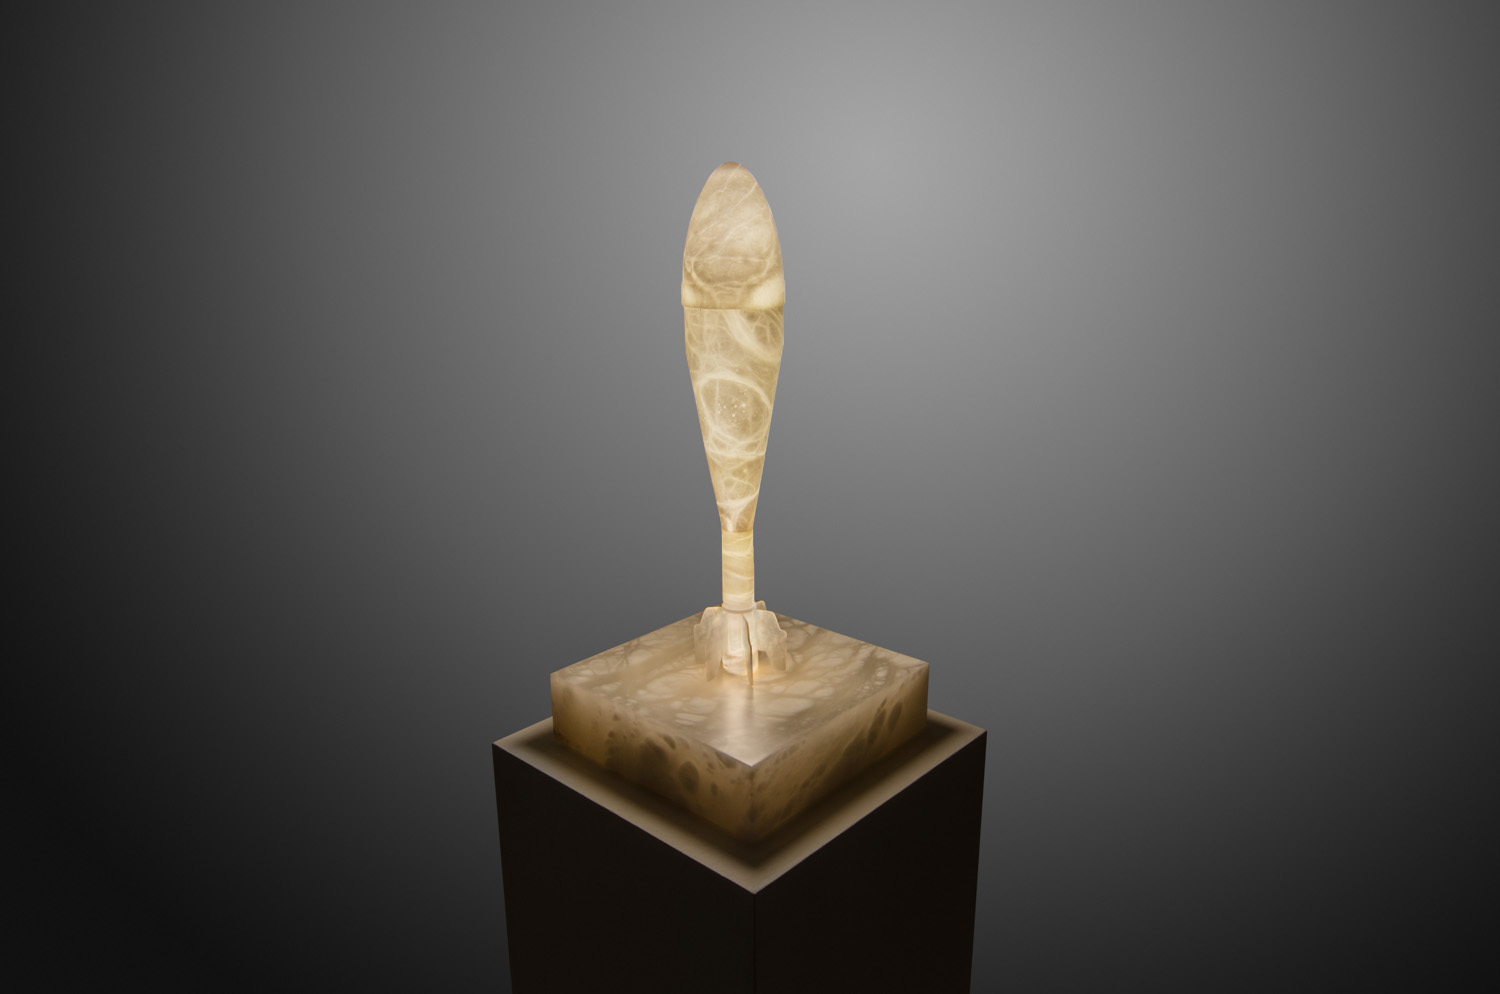 Alabaster sculpture light by Amarist studio.